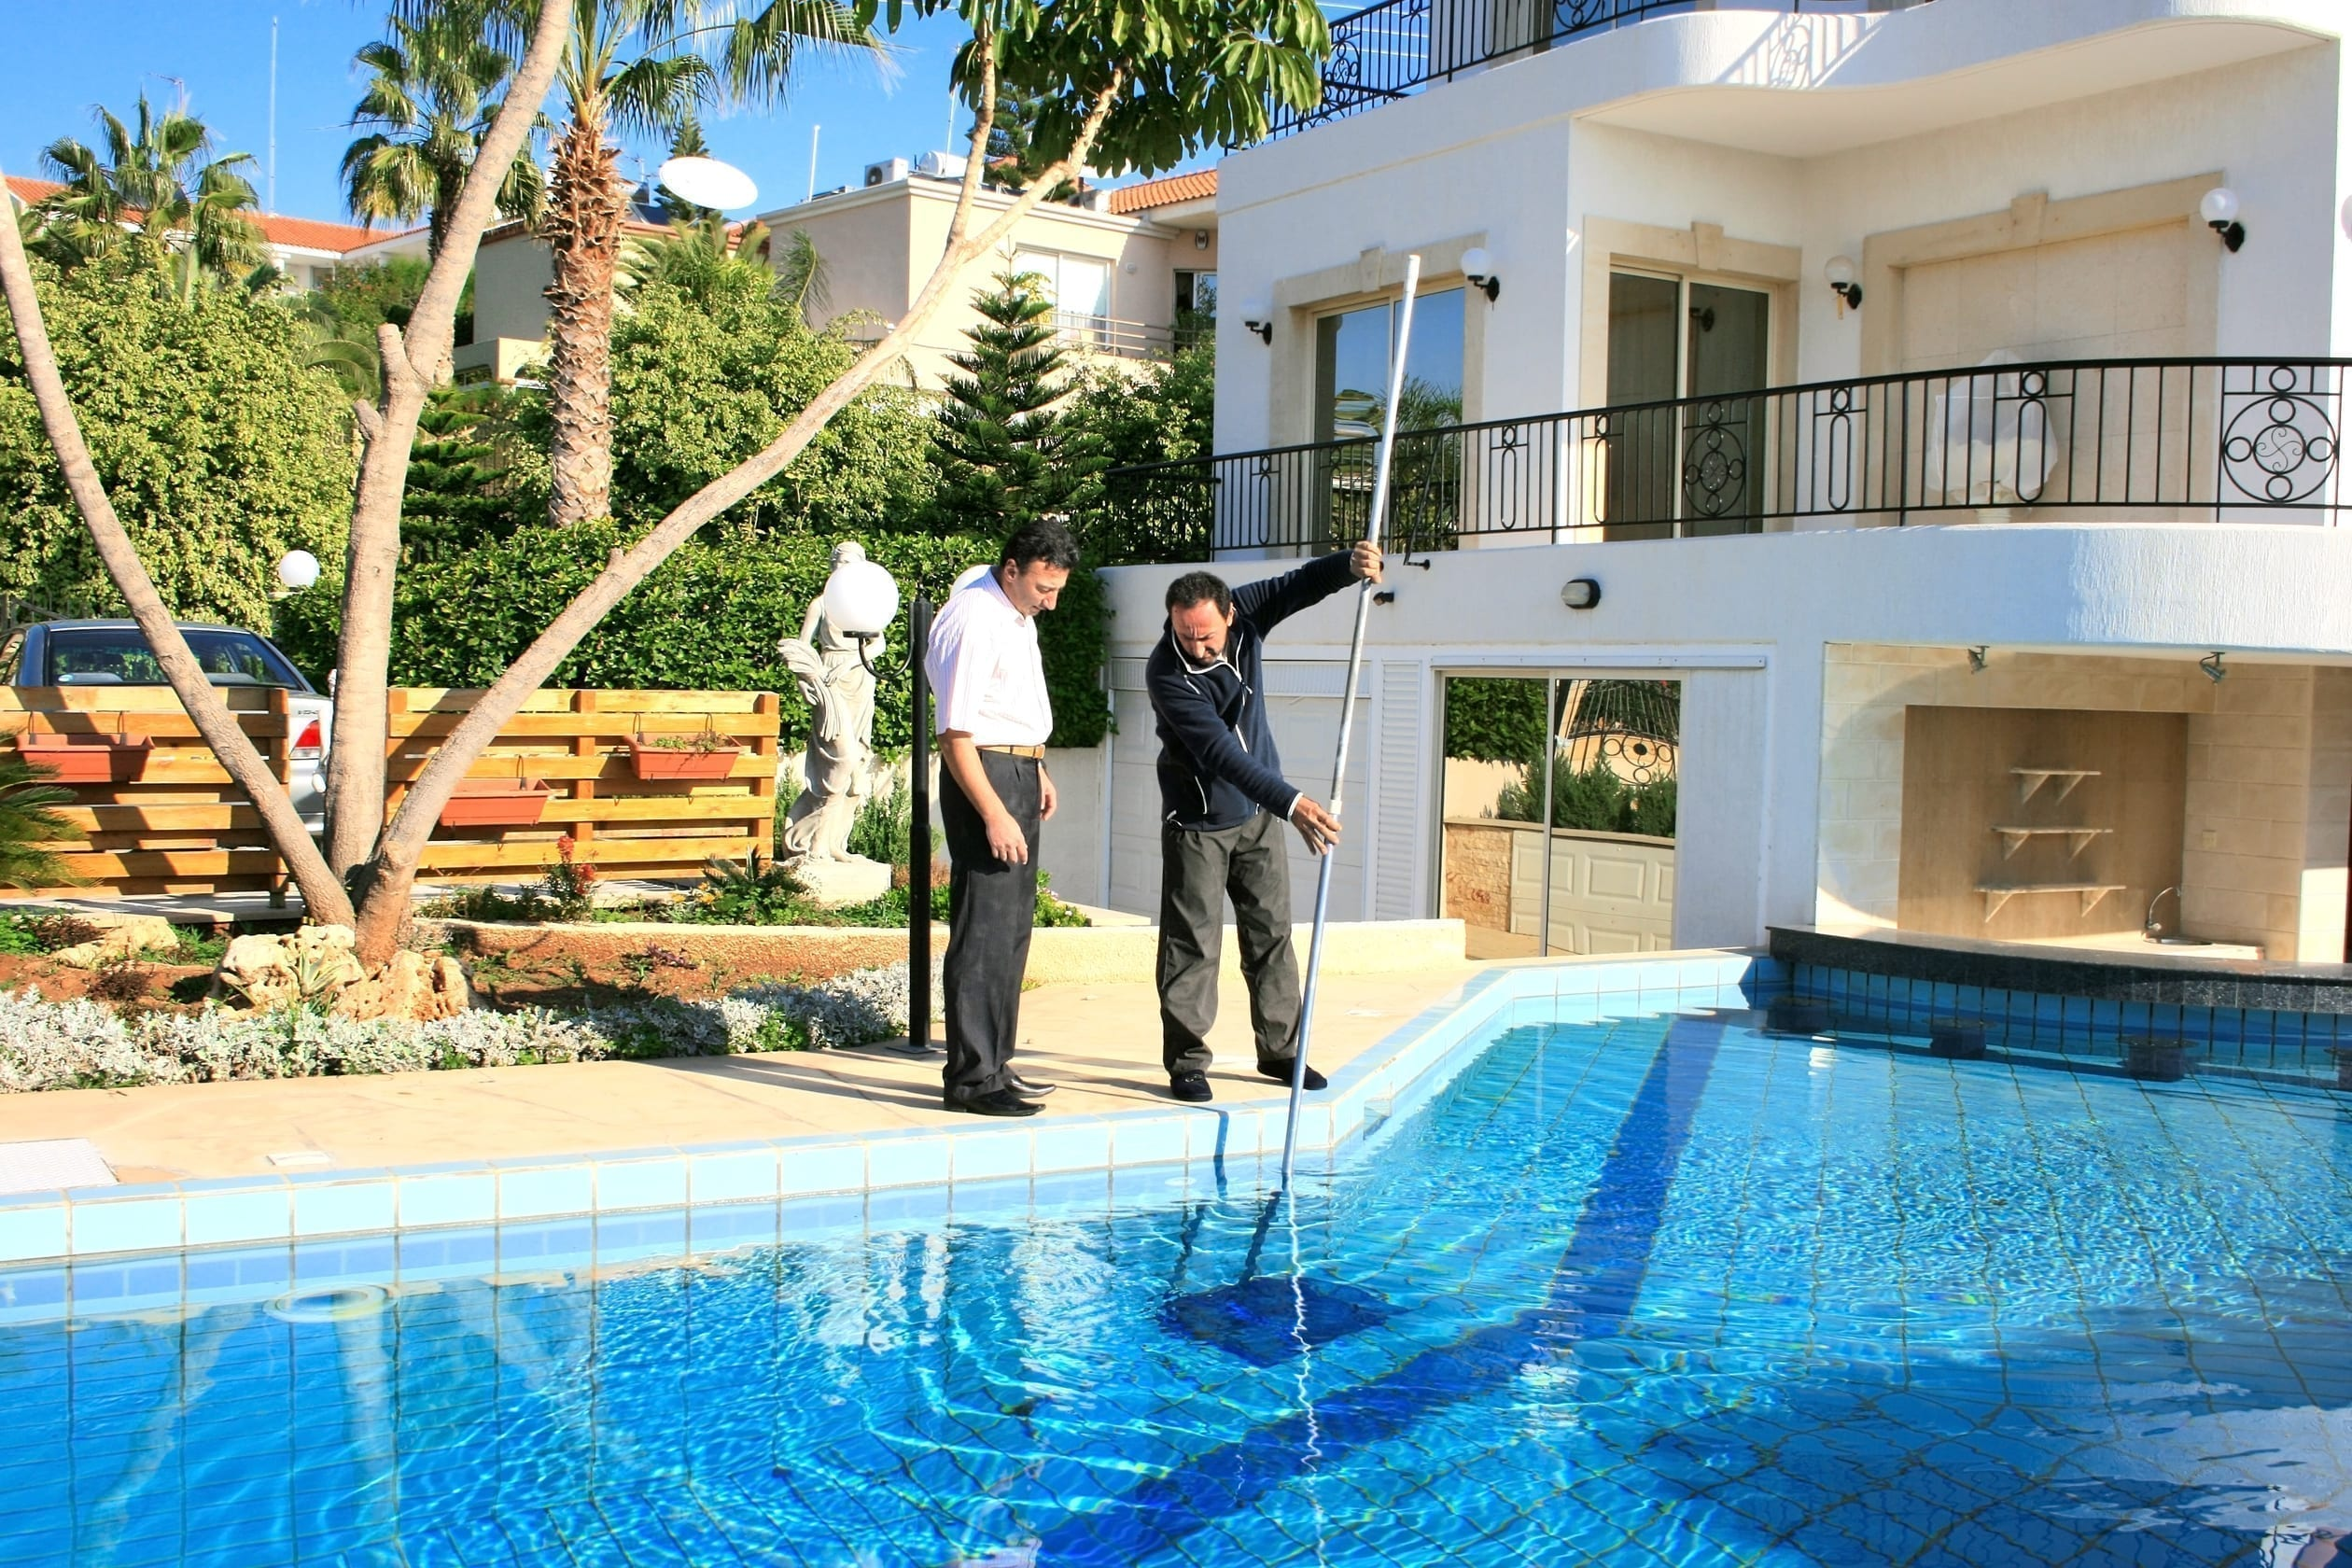 Vacation rental managers provide professional services